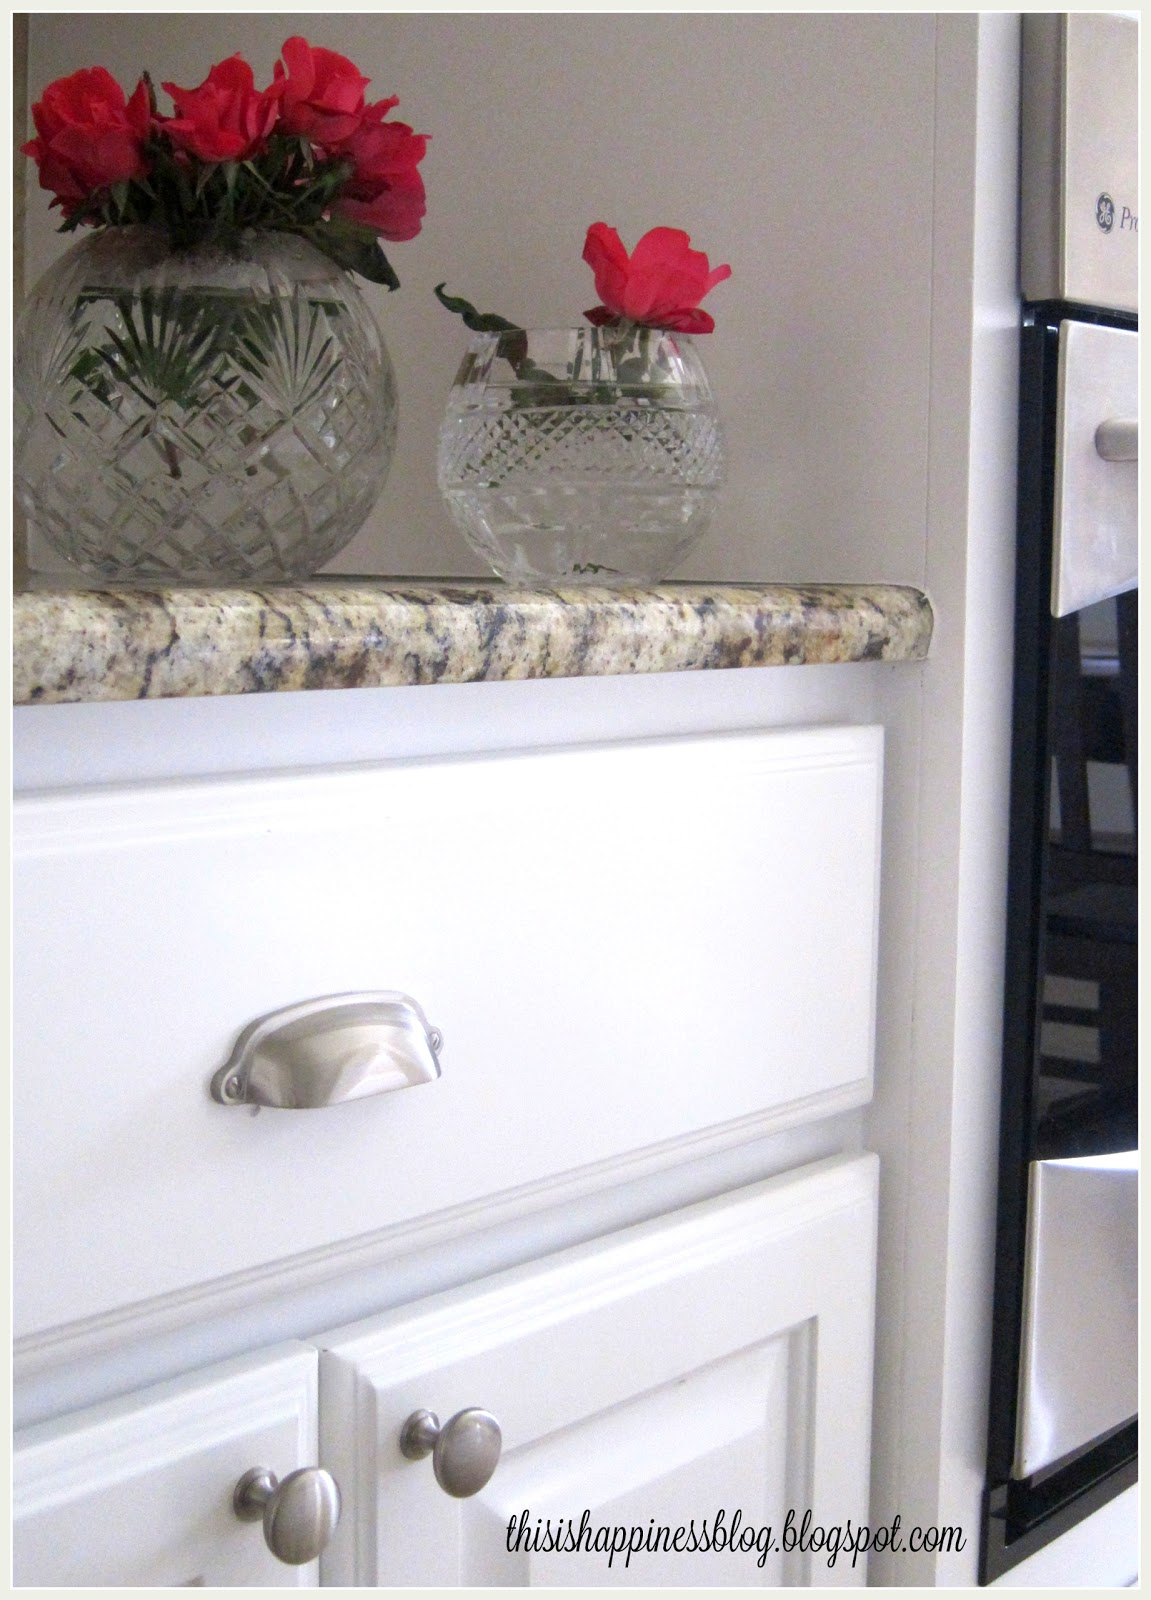 Hardware for Hanging Kitchen Cabinets